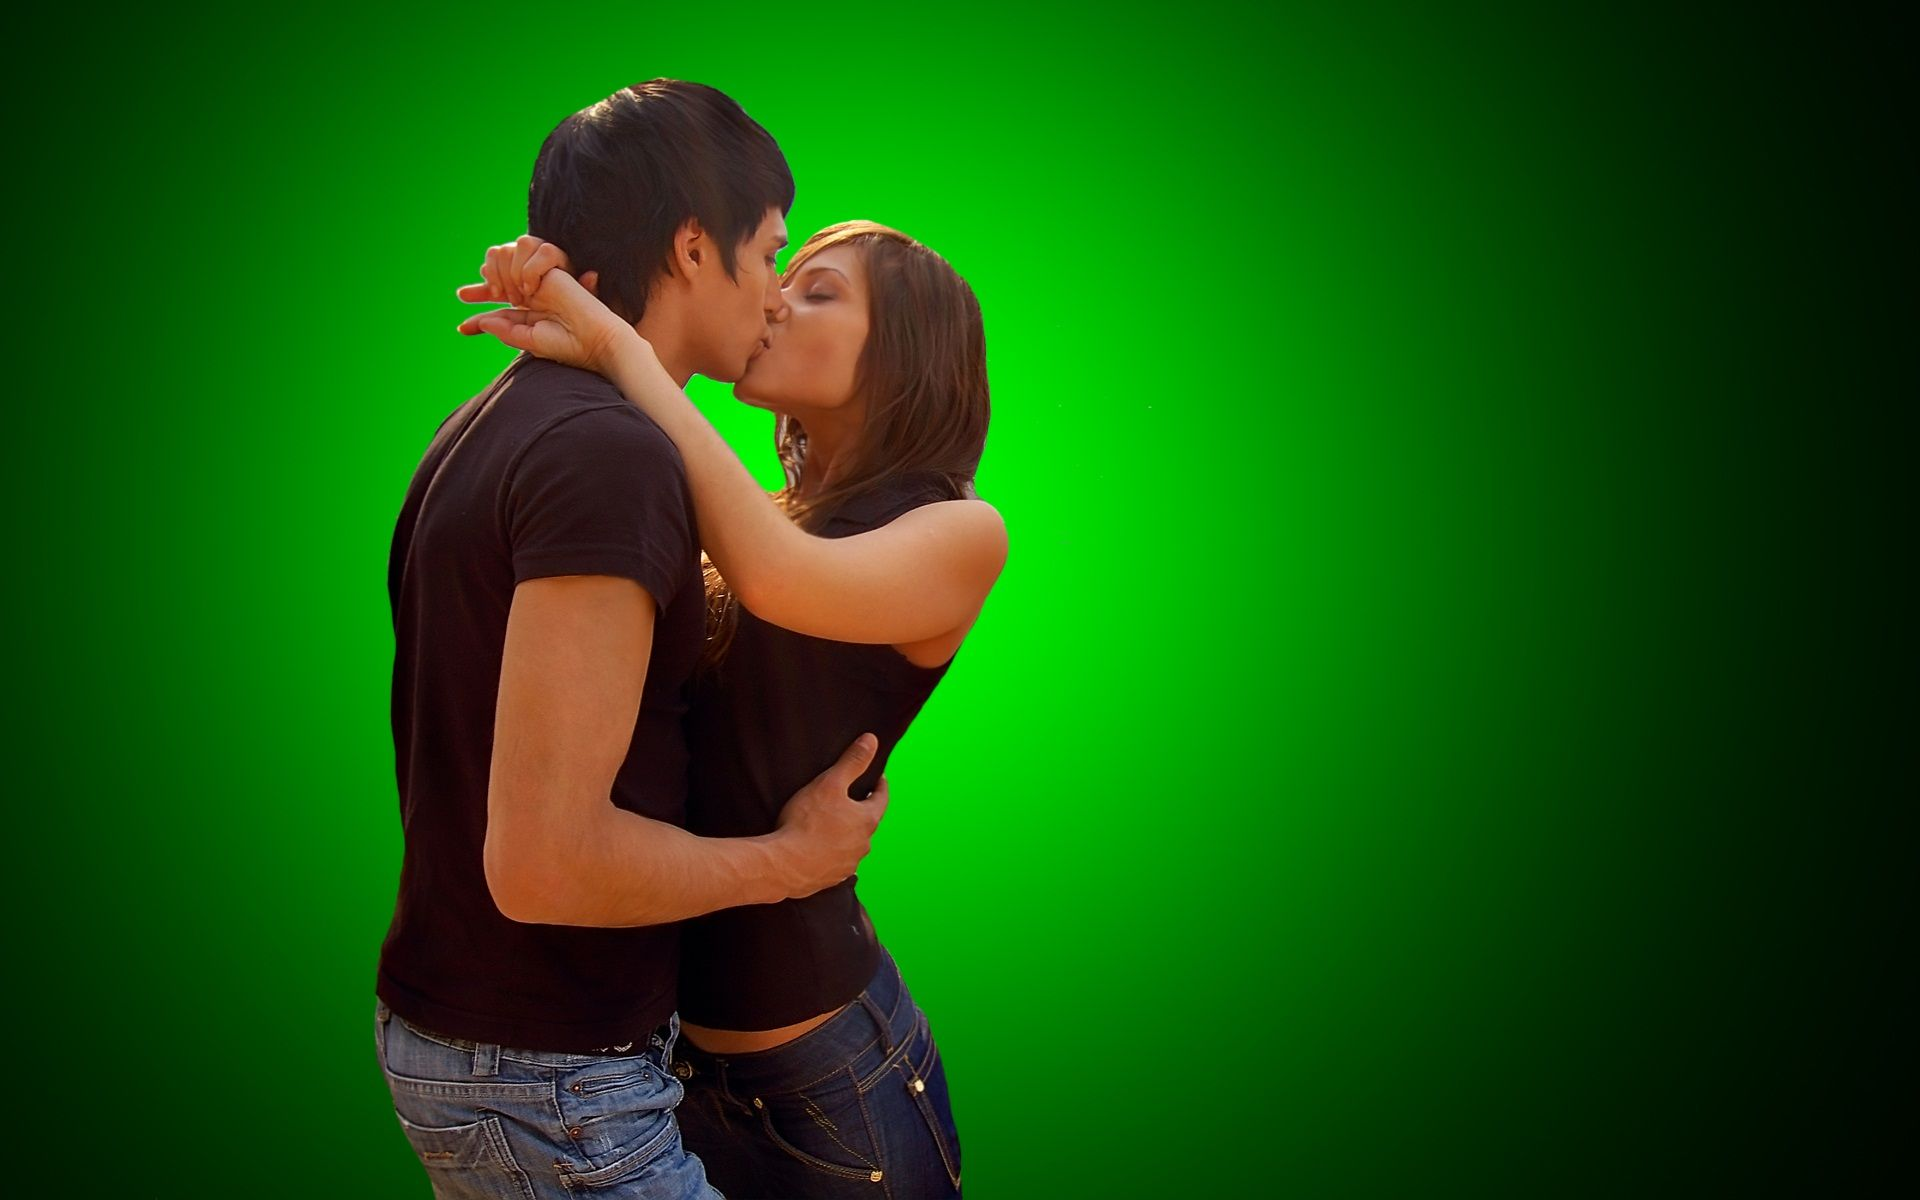 Hd wallpaper kiss - Kiss Lips Exotic Wallpaper Hd Android Apps On Google Play